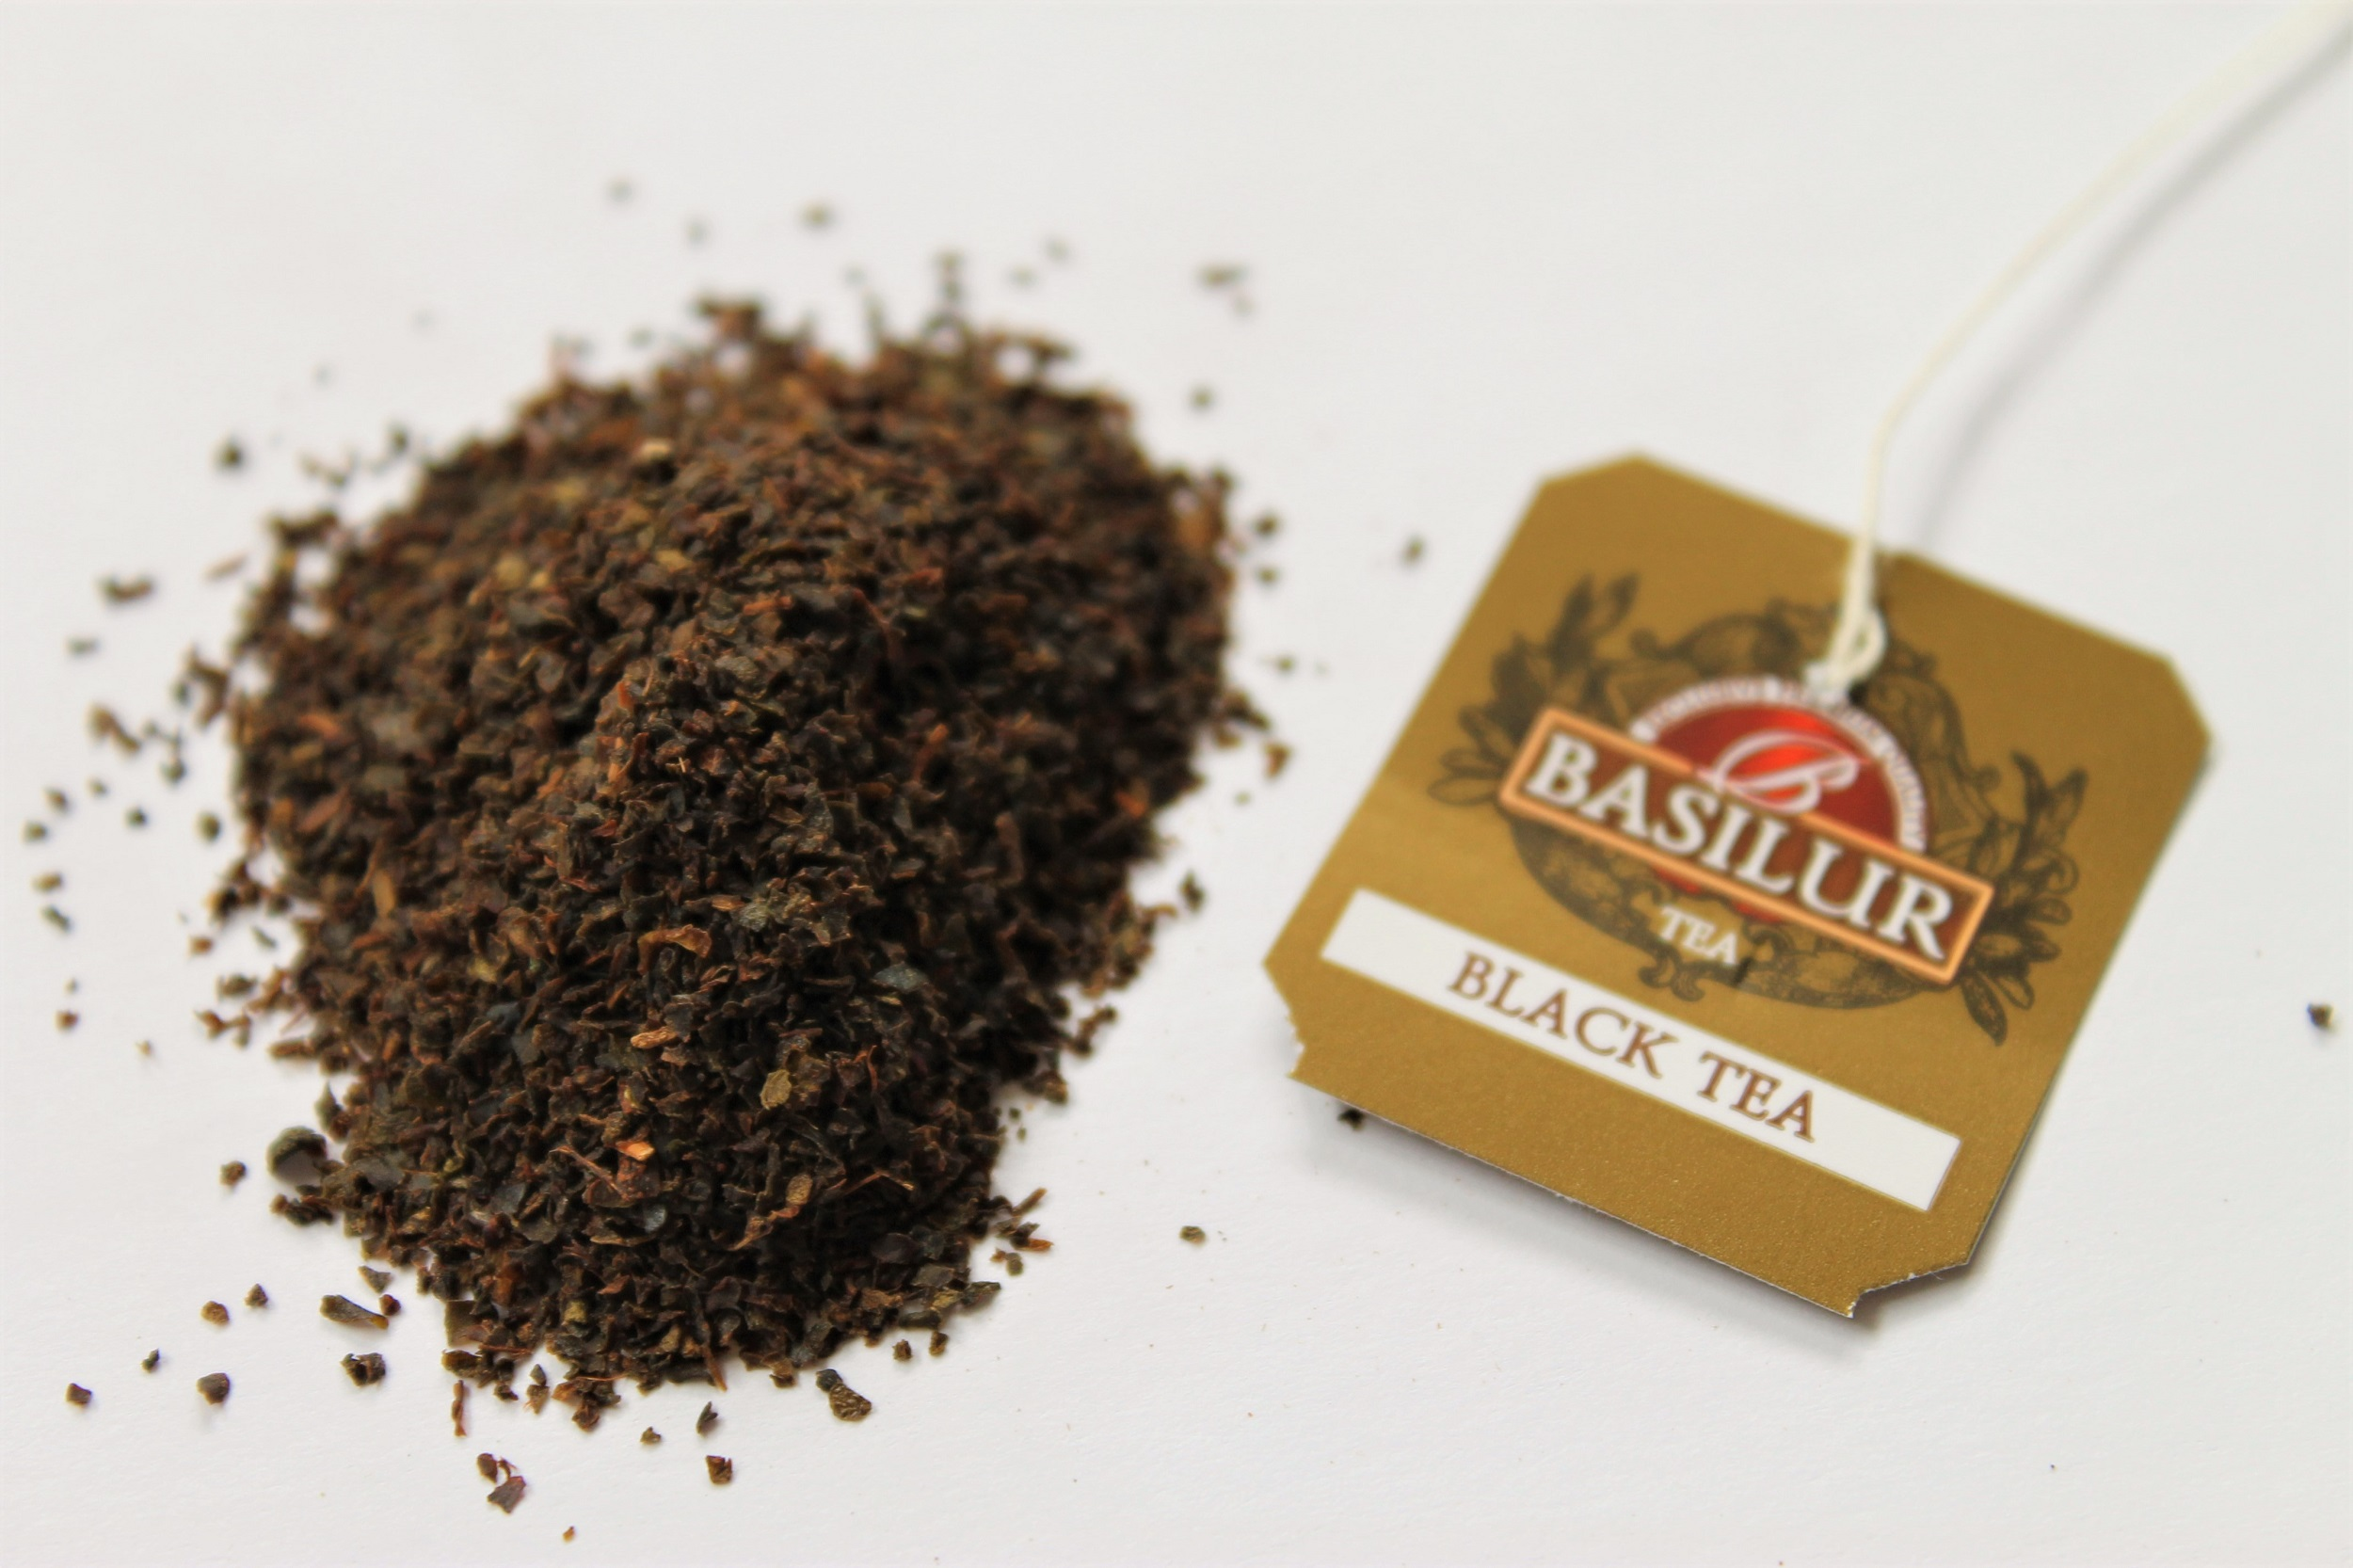 basilur black tea bags